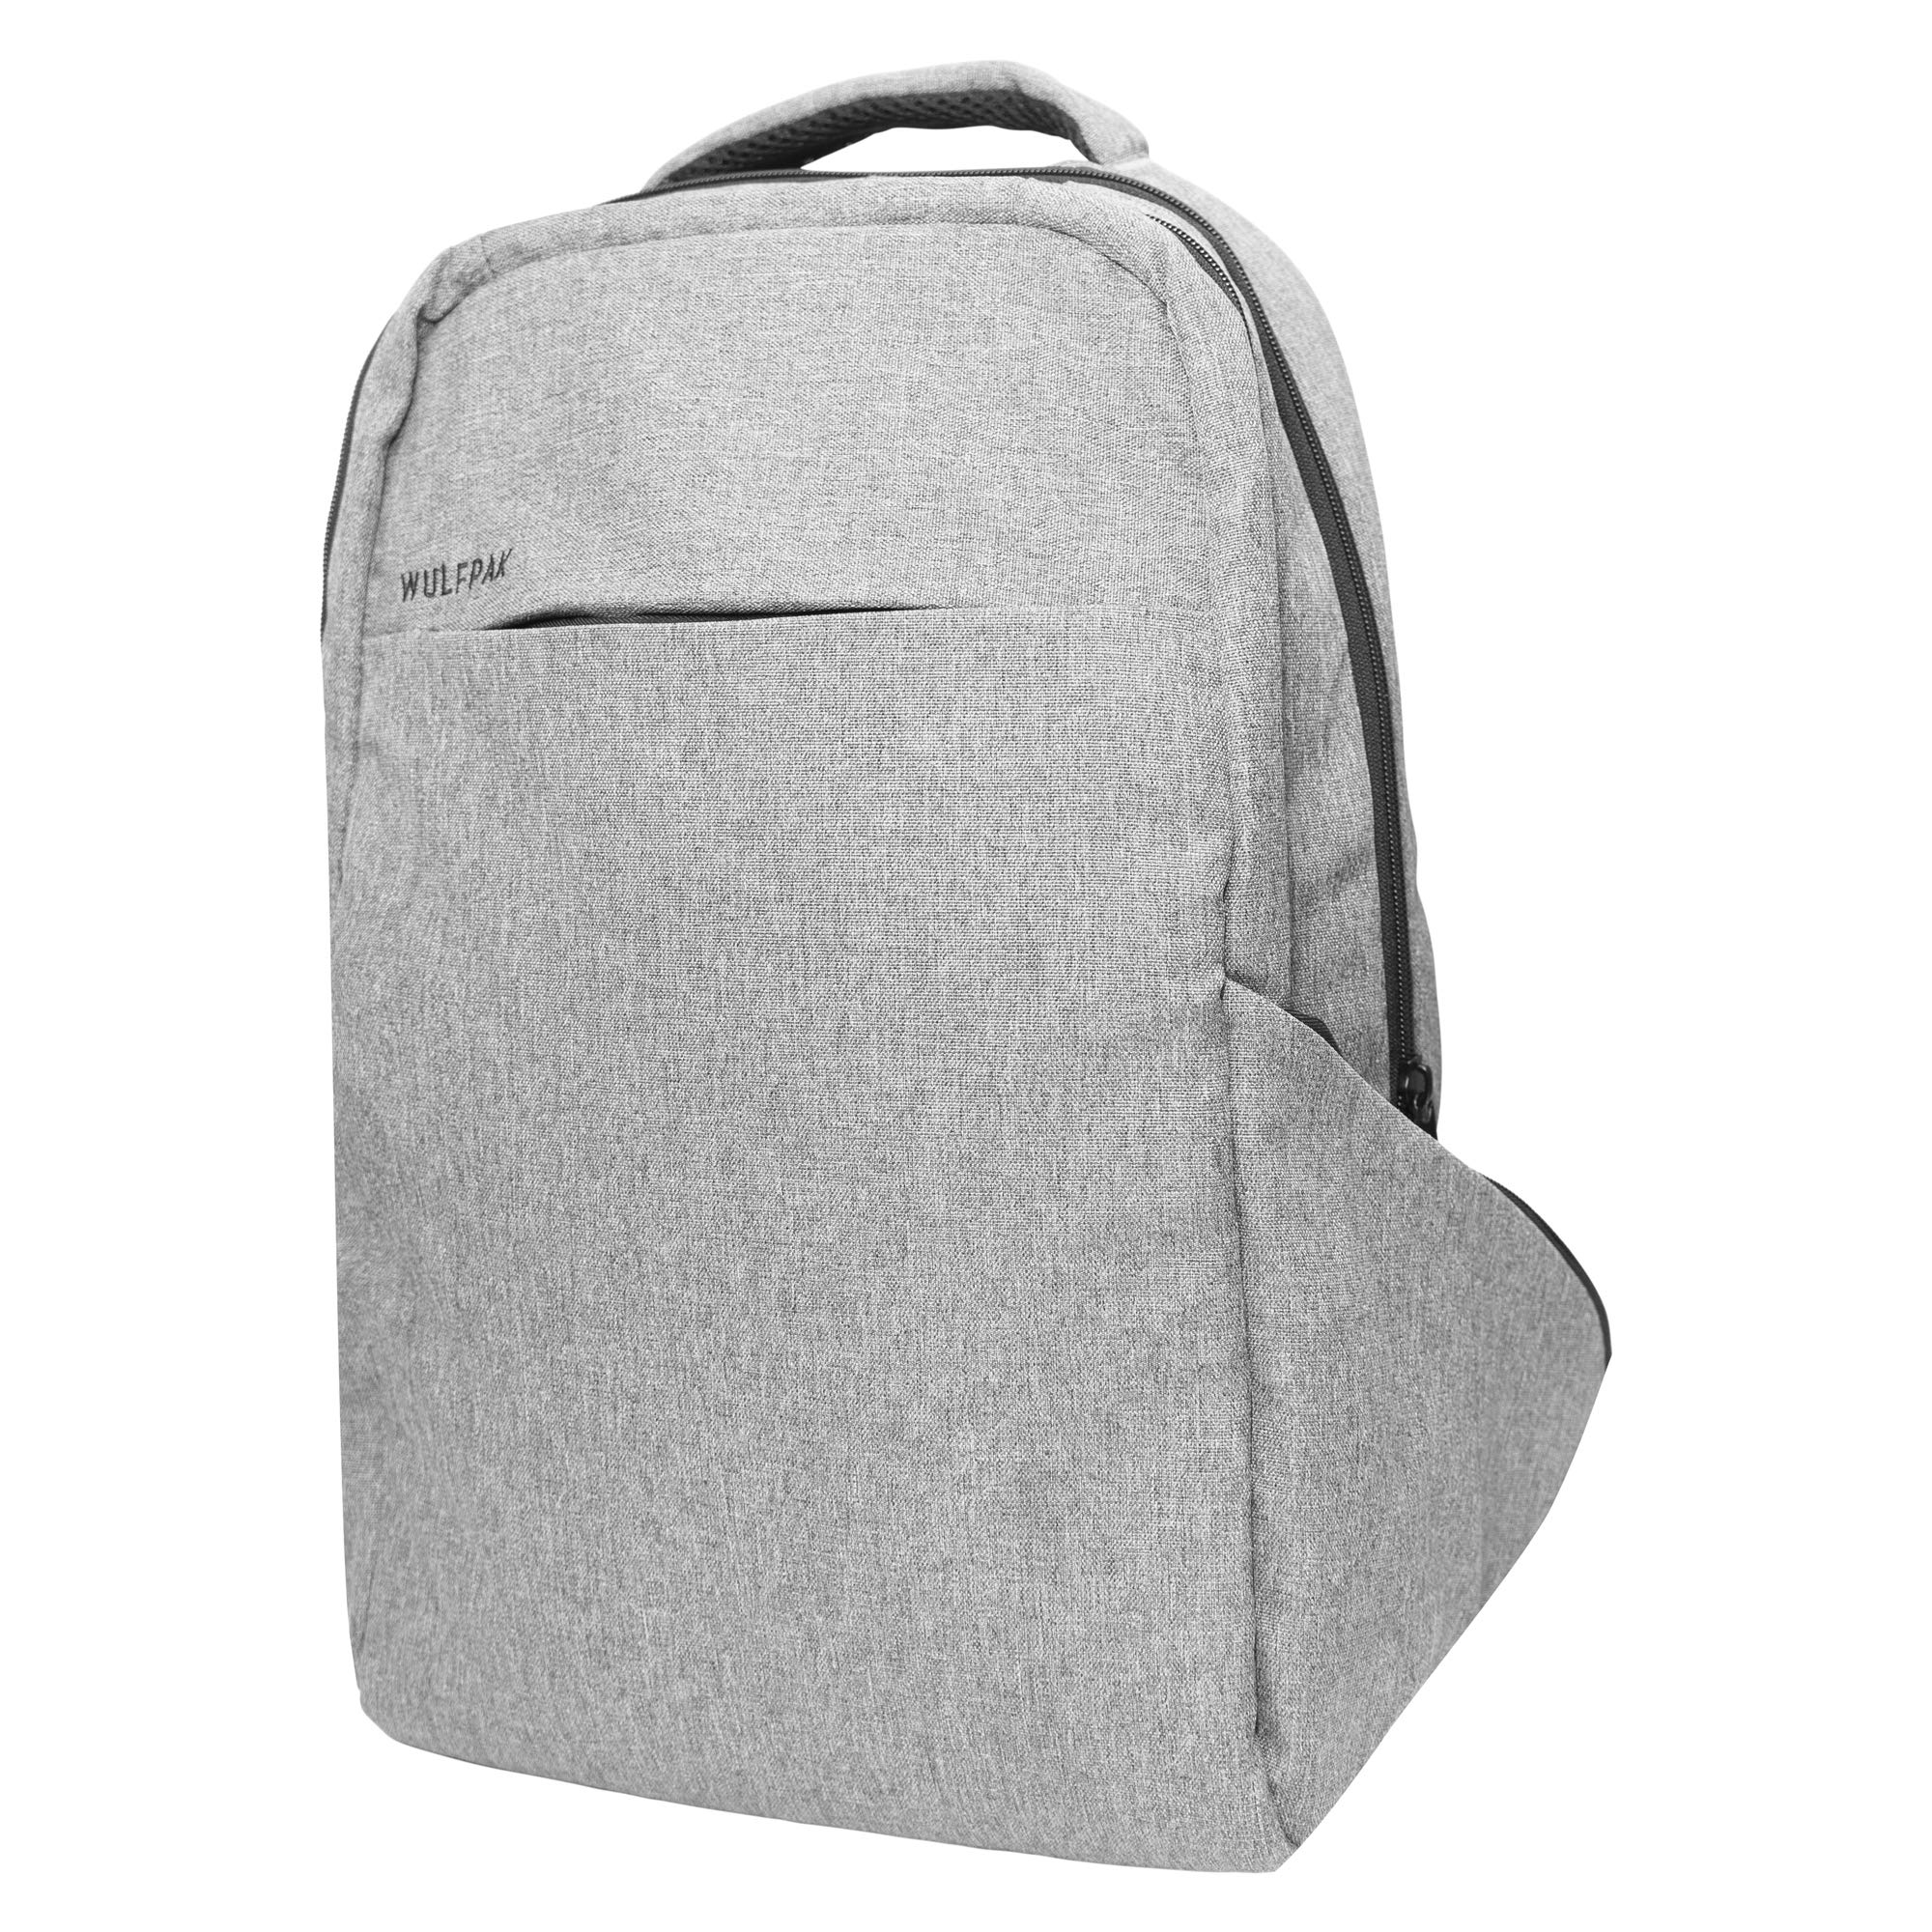 Laptop Backpack - Wulfpac professional anti-theft business rucksack - large, cool, slim, water-proof (resistant) bag - for school travel women girls men boys - fits 14, 15-.6, 16-.6, 17-.3 inch laptop